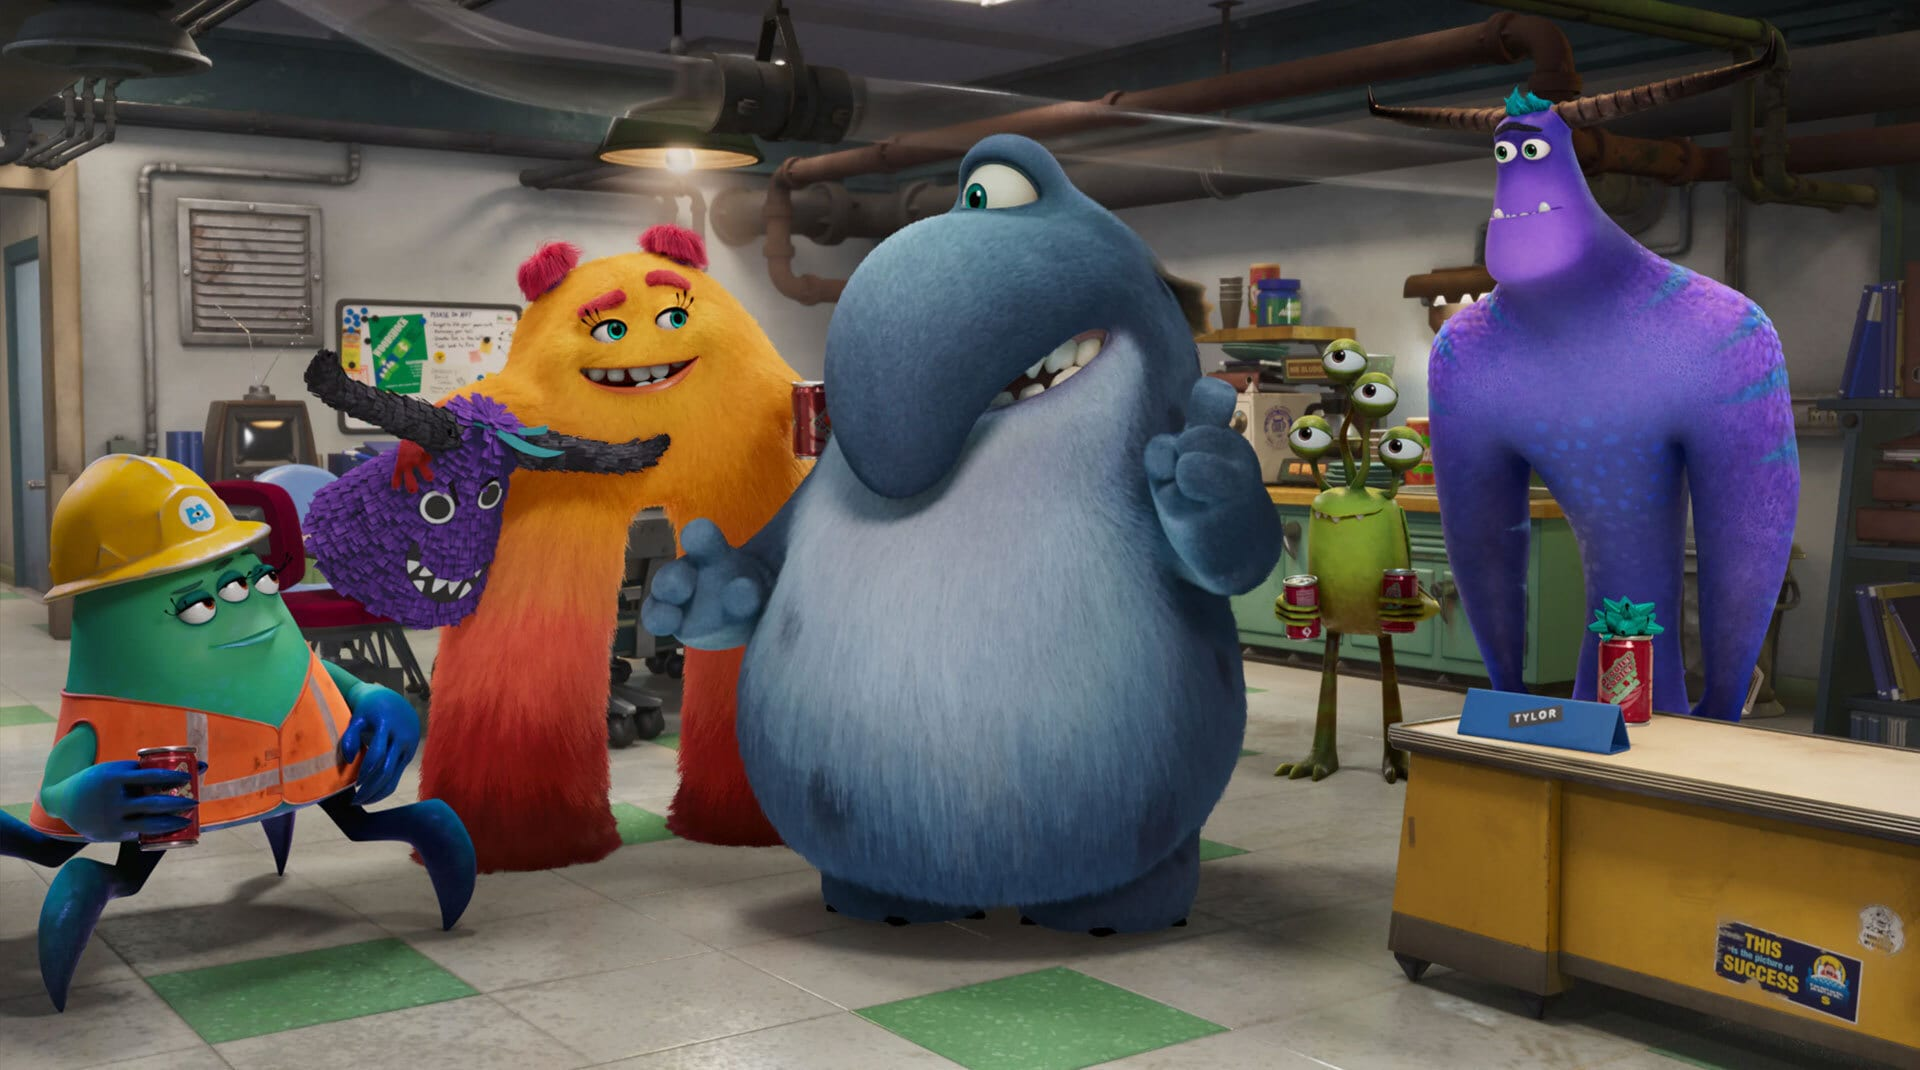 A still image from Monsters at work